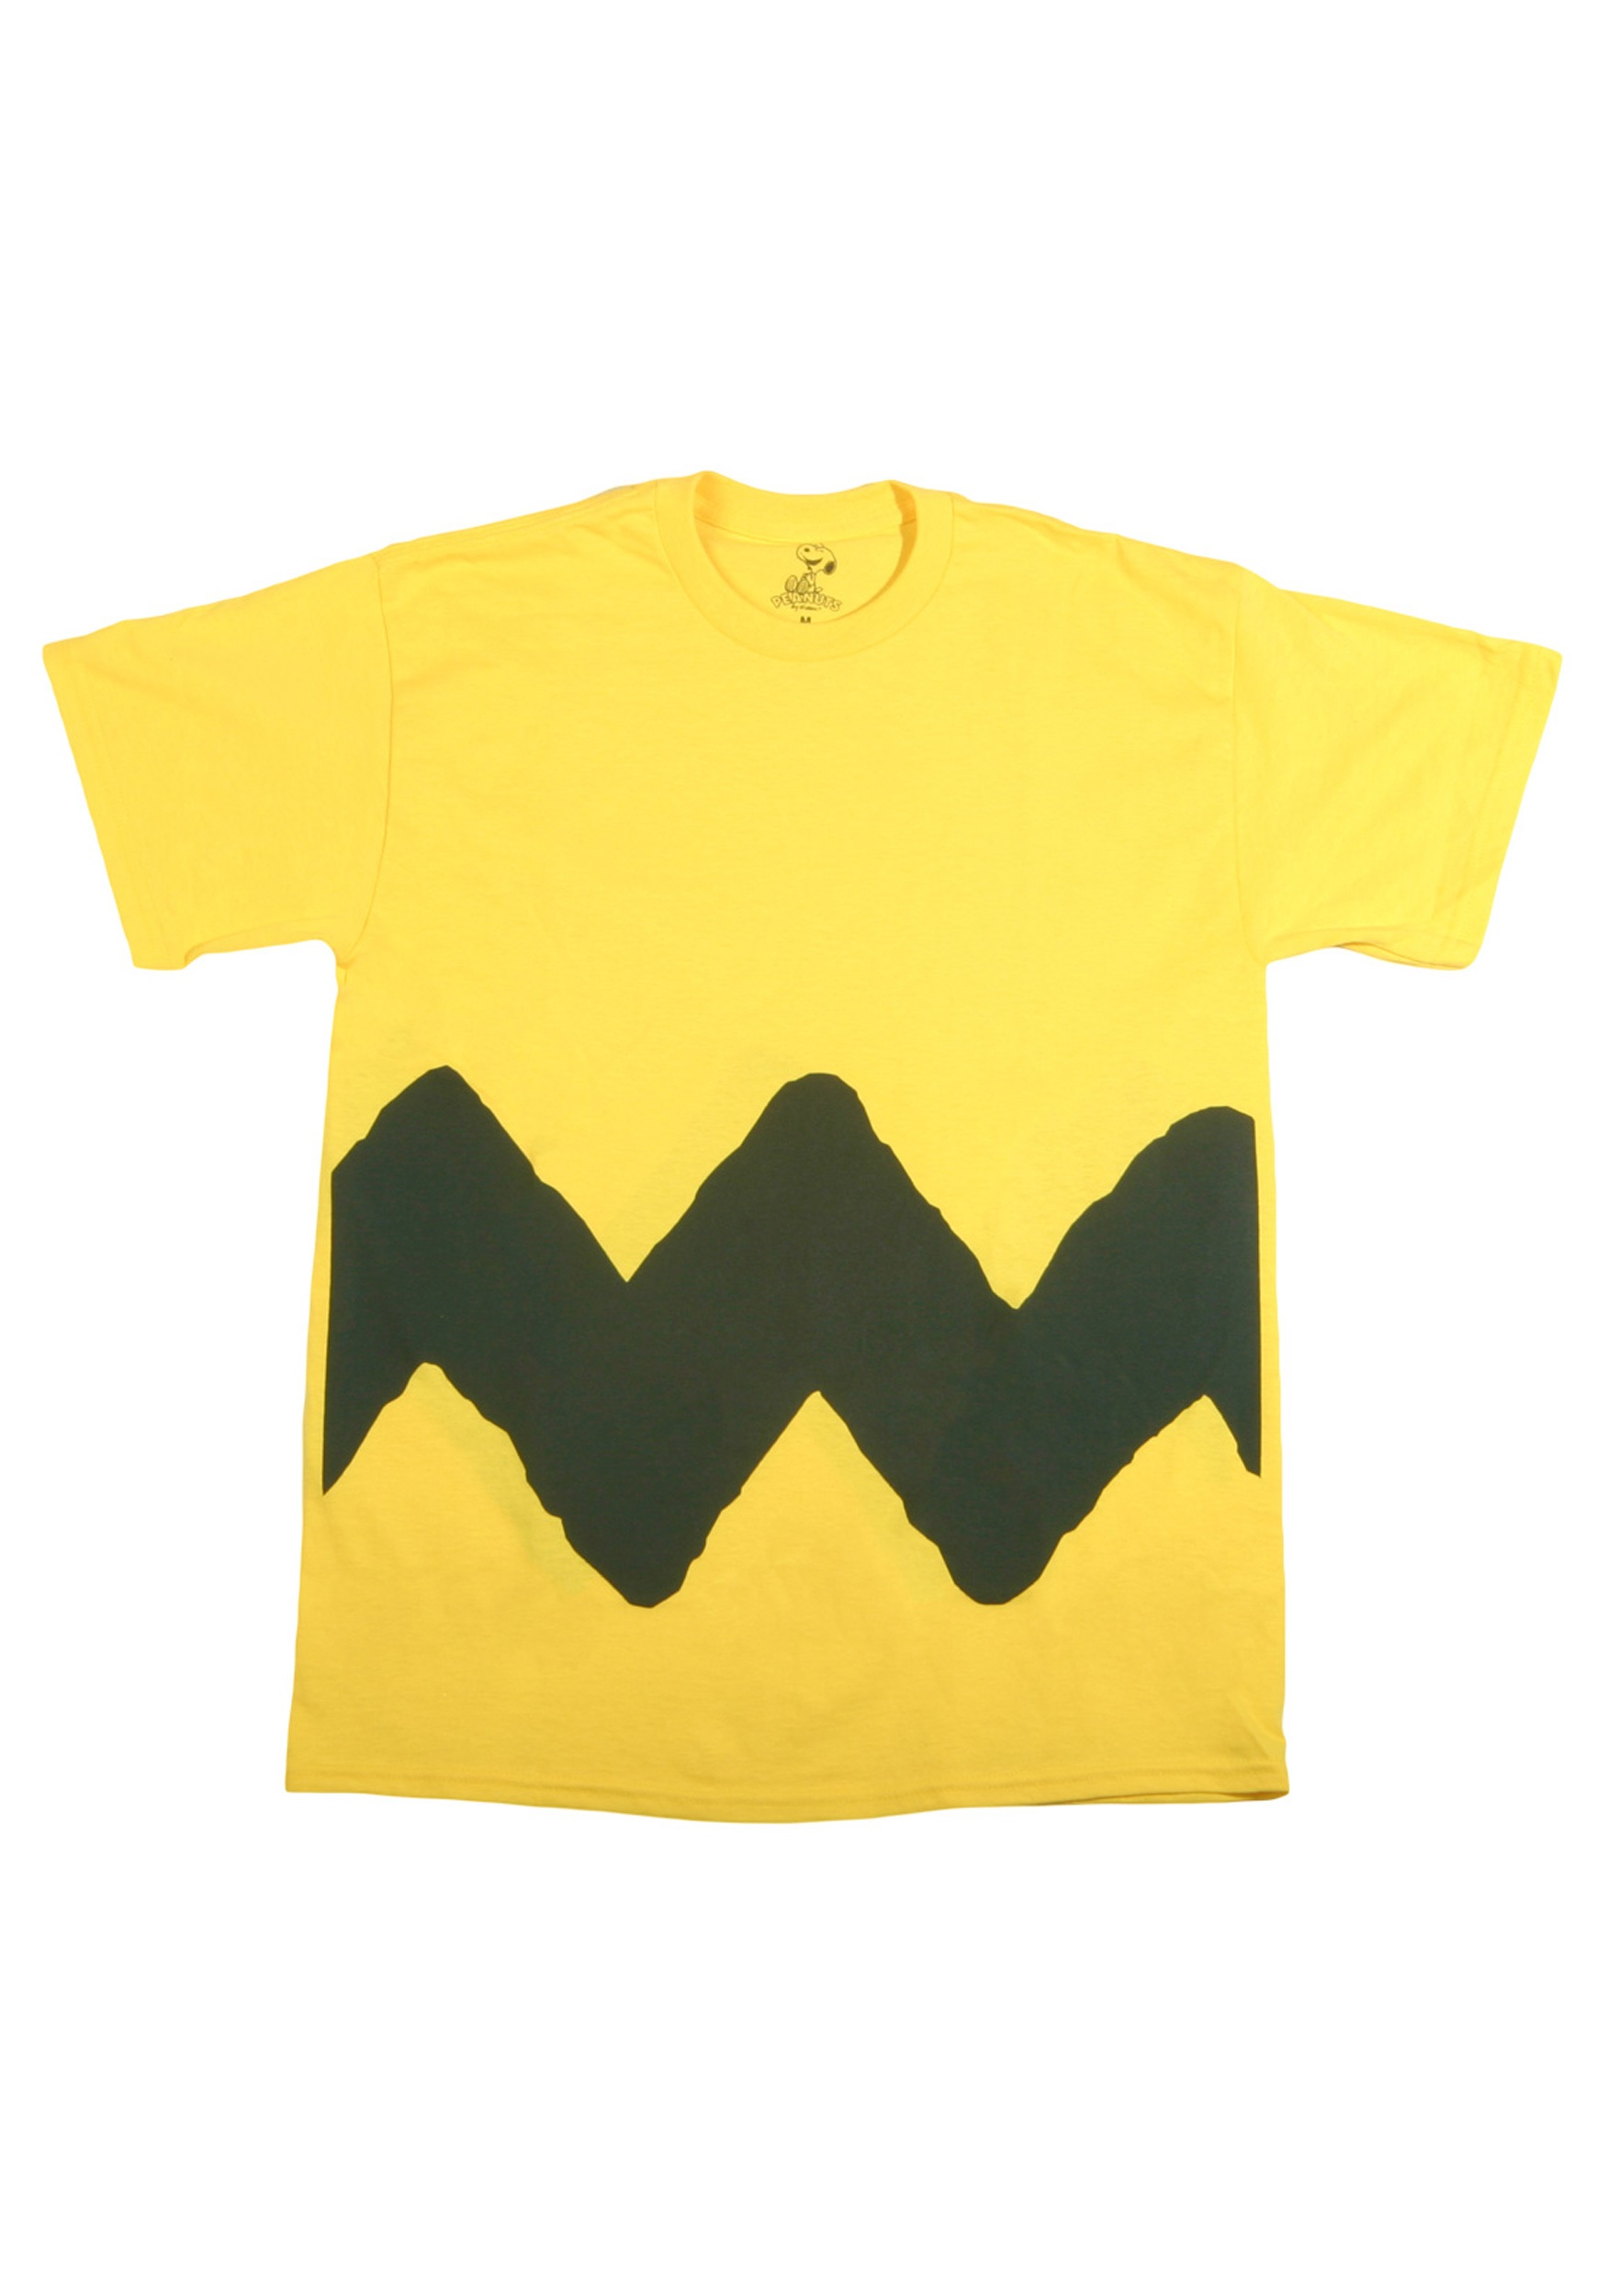 peanuts charlie brown t-shirt - halloween costumes